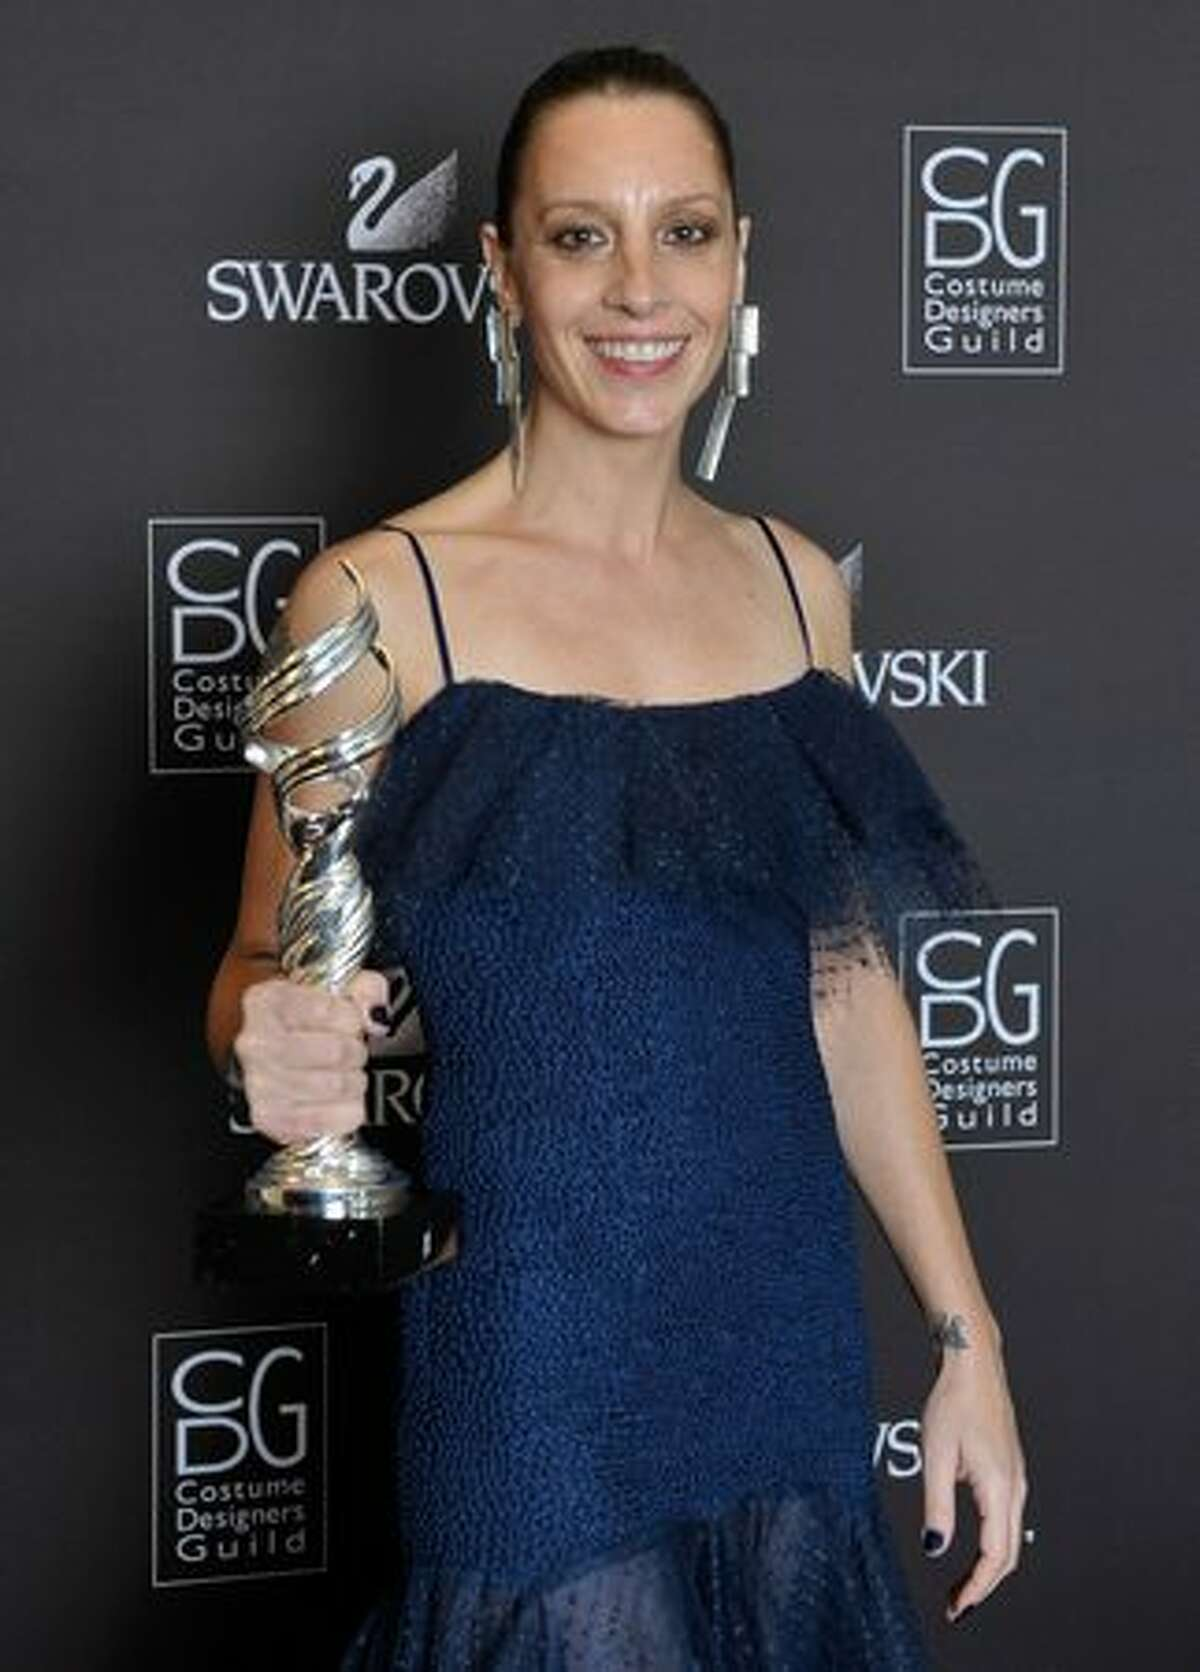 Costume Designer Catherine Marie Thomas winner of the award for Outstanding Made for Television Movie or Miniseries for